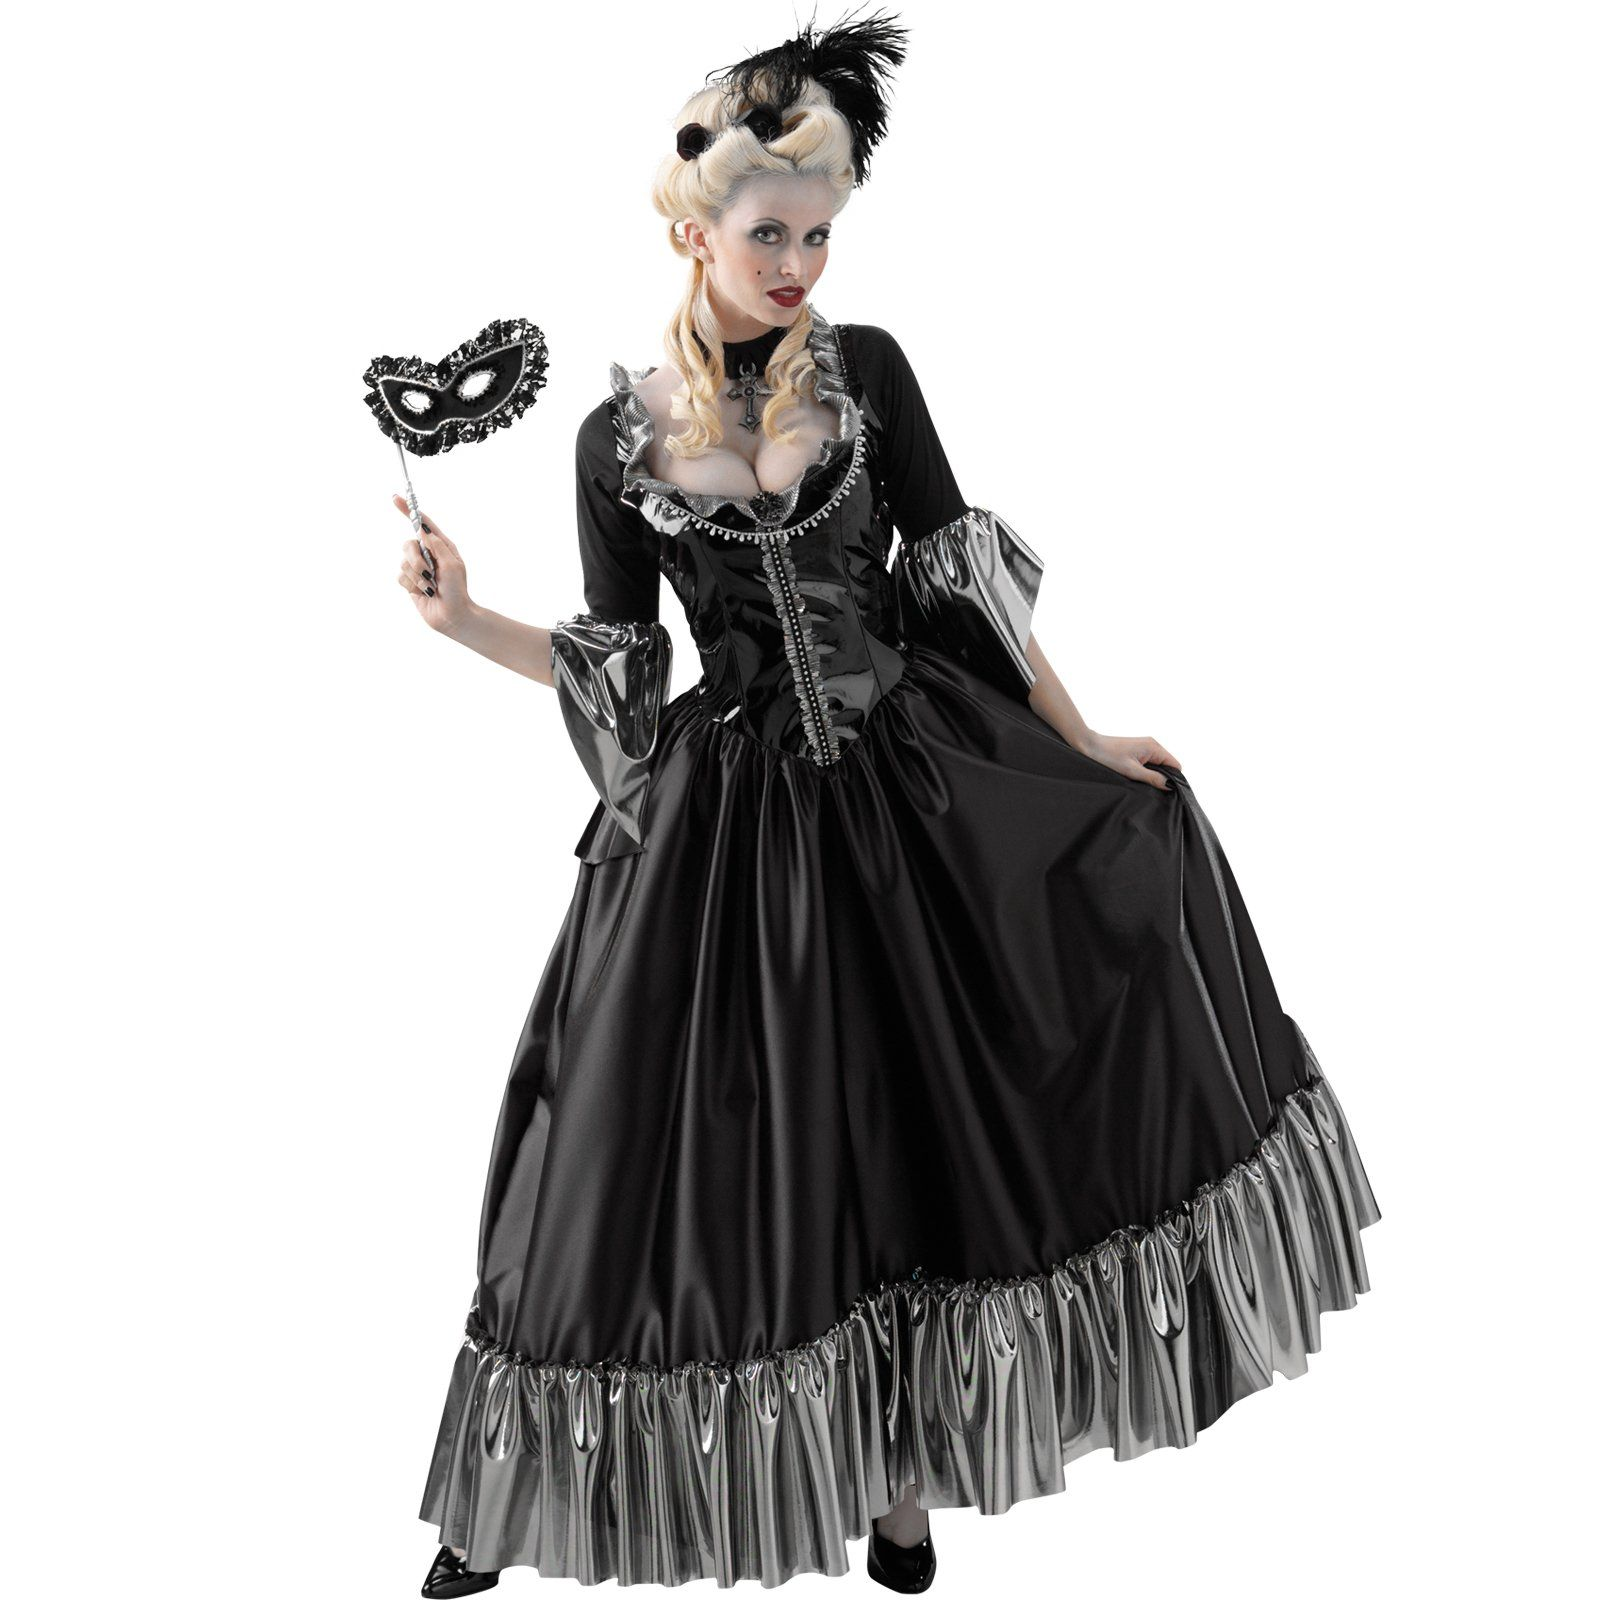 Masquerade ball queen adult costume from buycostumes com